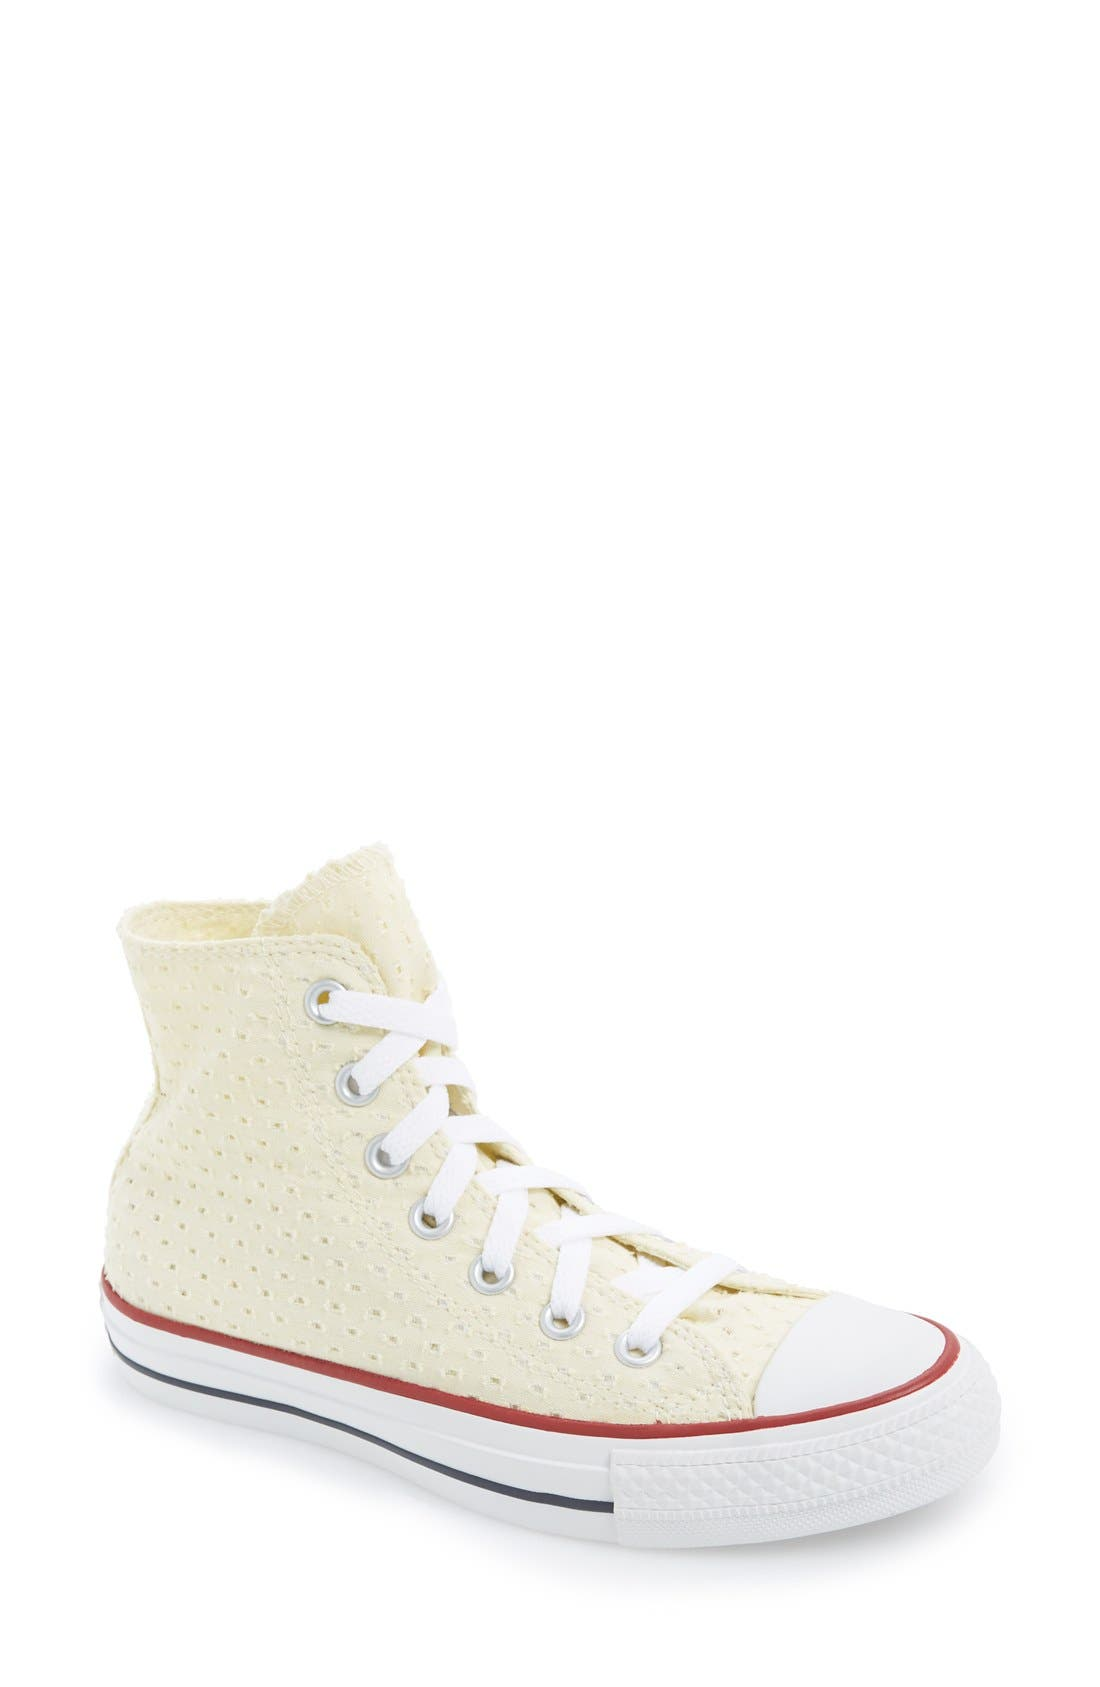 Alternate Image 1 Selected - Converse Chuck Taylor® All Star® Eyelet Perforated High Top Sneaker (Women)